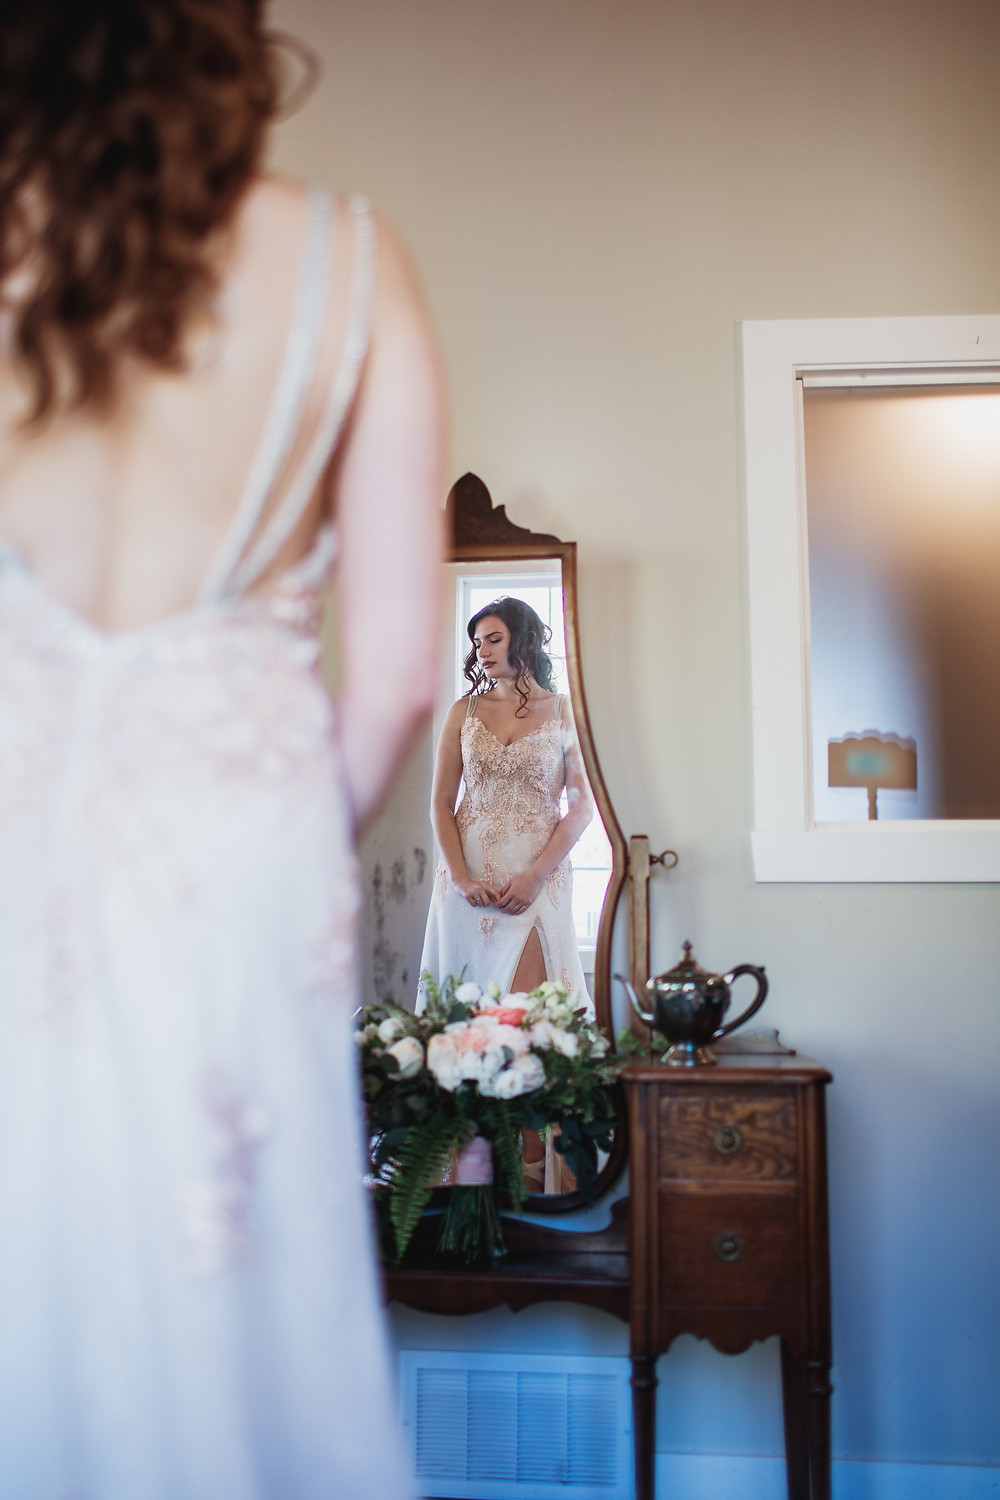 Bride getting ready in front of mirror.